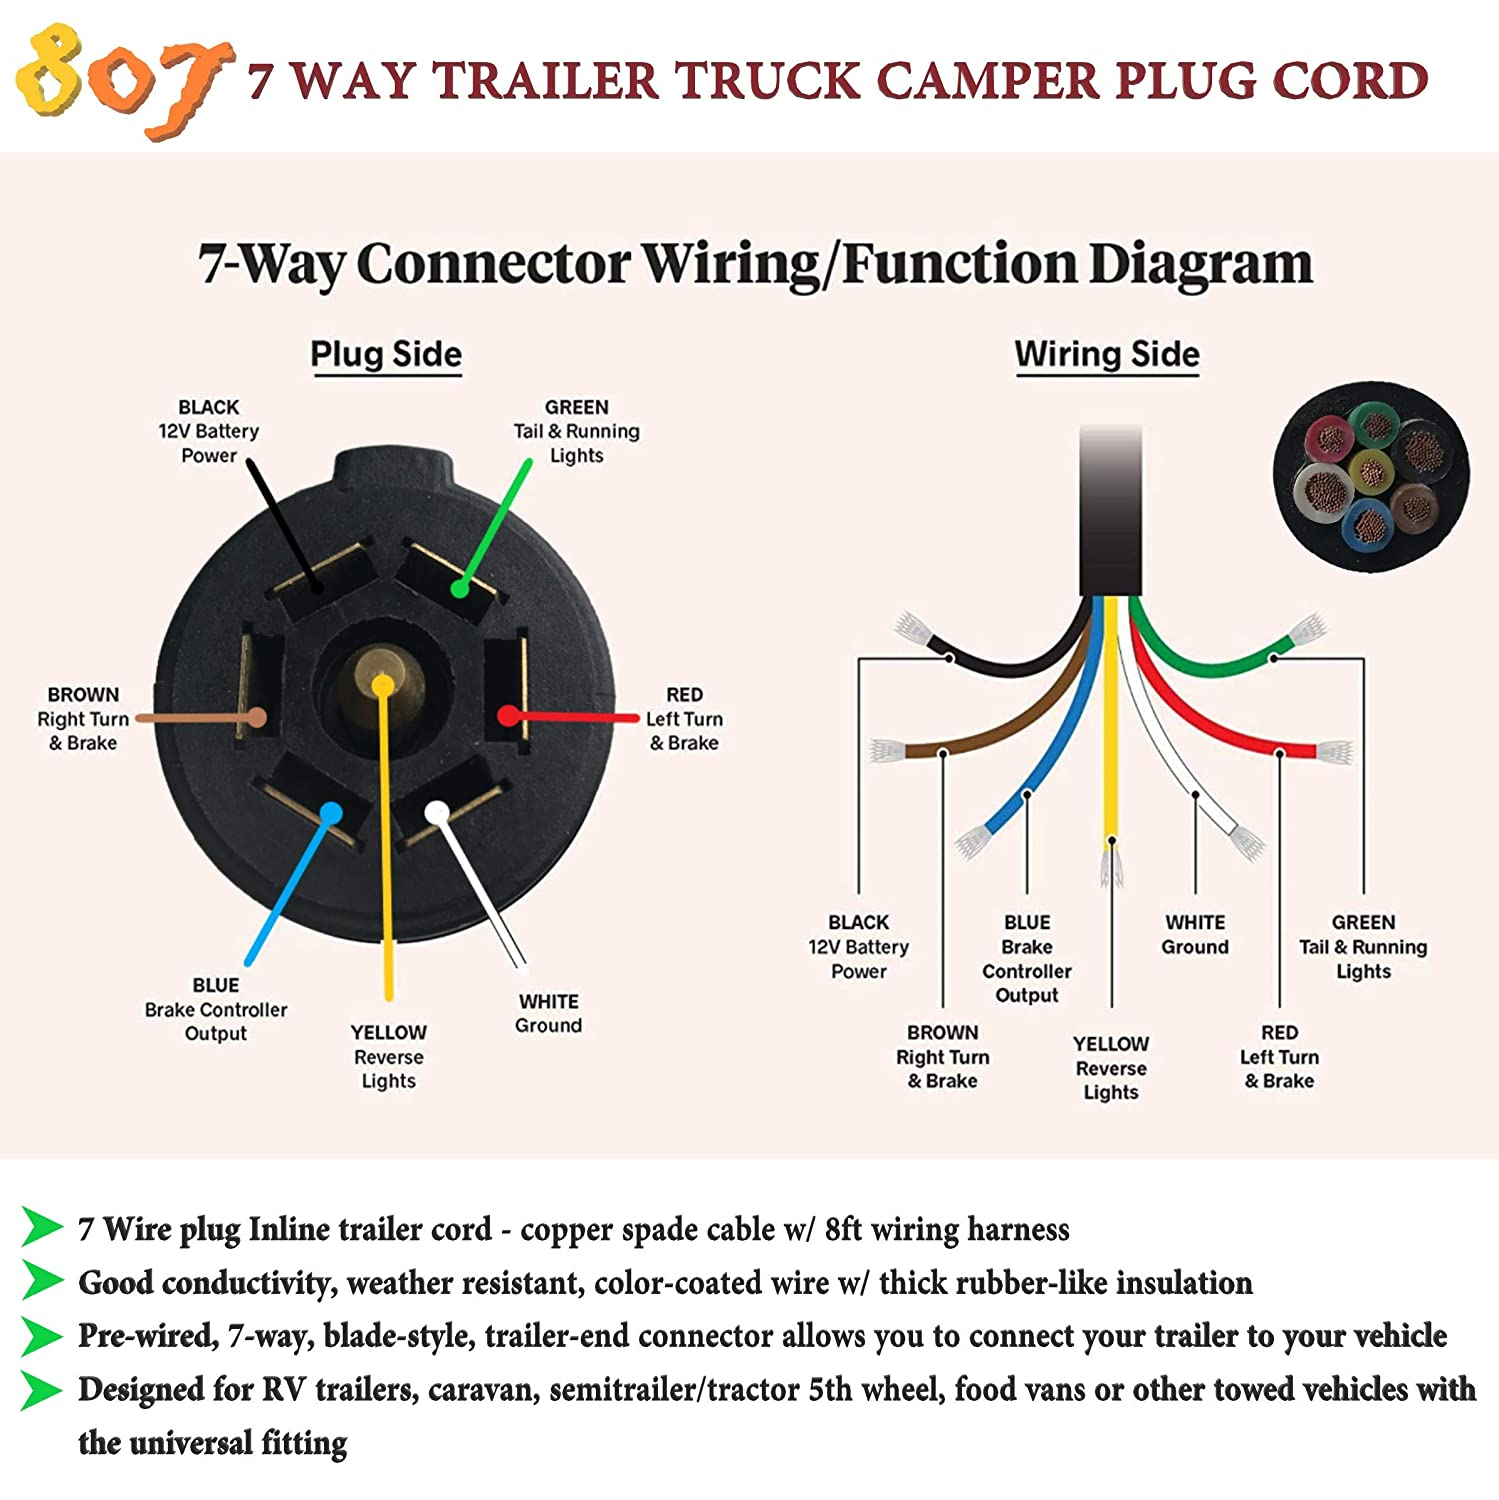 6 Pin Round Trailer Wiring Diagram | Wiring Diagram Wiring Diagram Trailer Lights on trailer lights brakes diagram, trailer lights cable, trailer lights plug, trailer lights wire, trailer lights connector, trailer harness diagram, trailer lights wiring harness, standard 7 wire trailer diagram, trailer breakaway wiring-diagram, trailer lights schematic, trailer lights troubleshooting diagram, trailer wiring color code, trailer battery diagram, 4-way trailer light diagram, trailer wiring schematic,